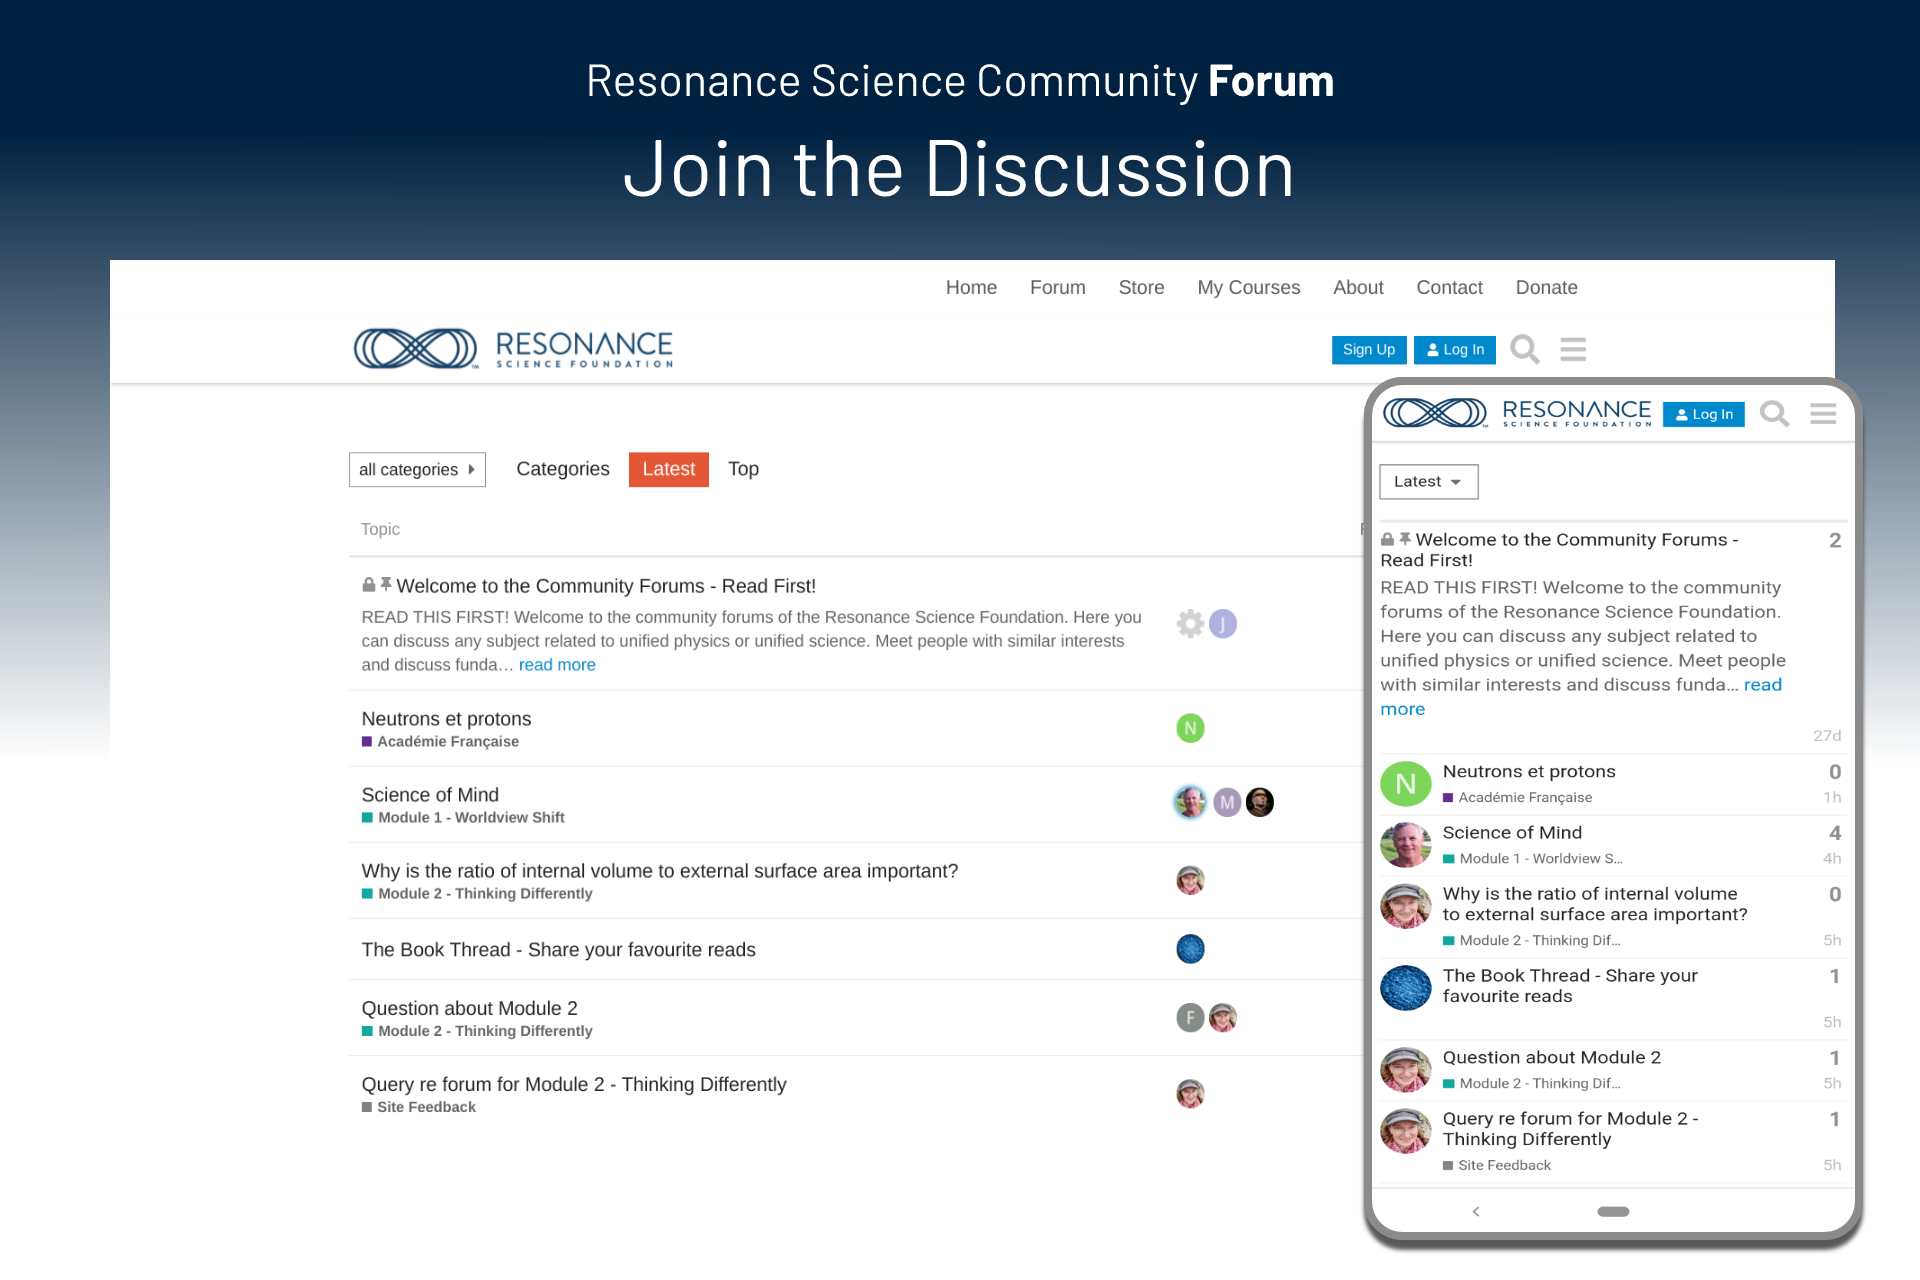 Resonance Science Community Forum. Join the discussion.